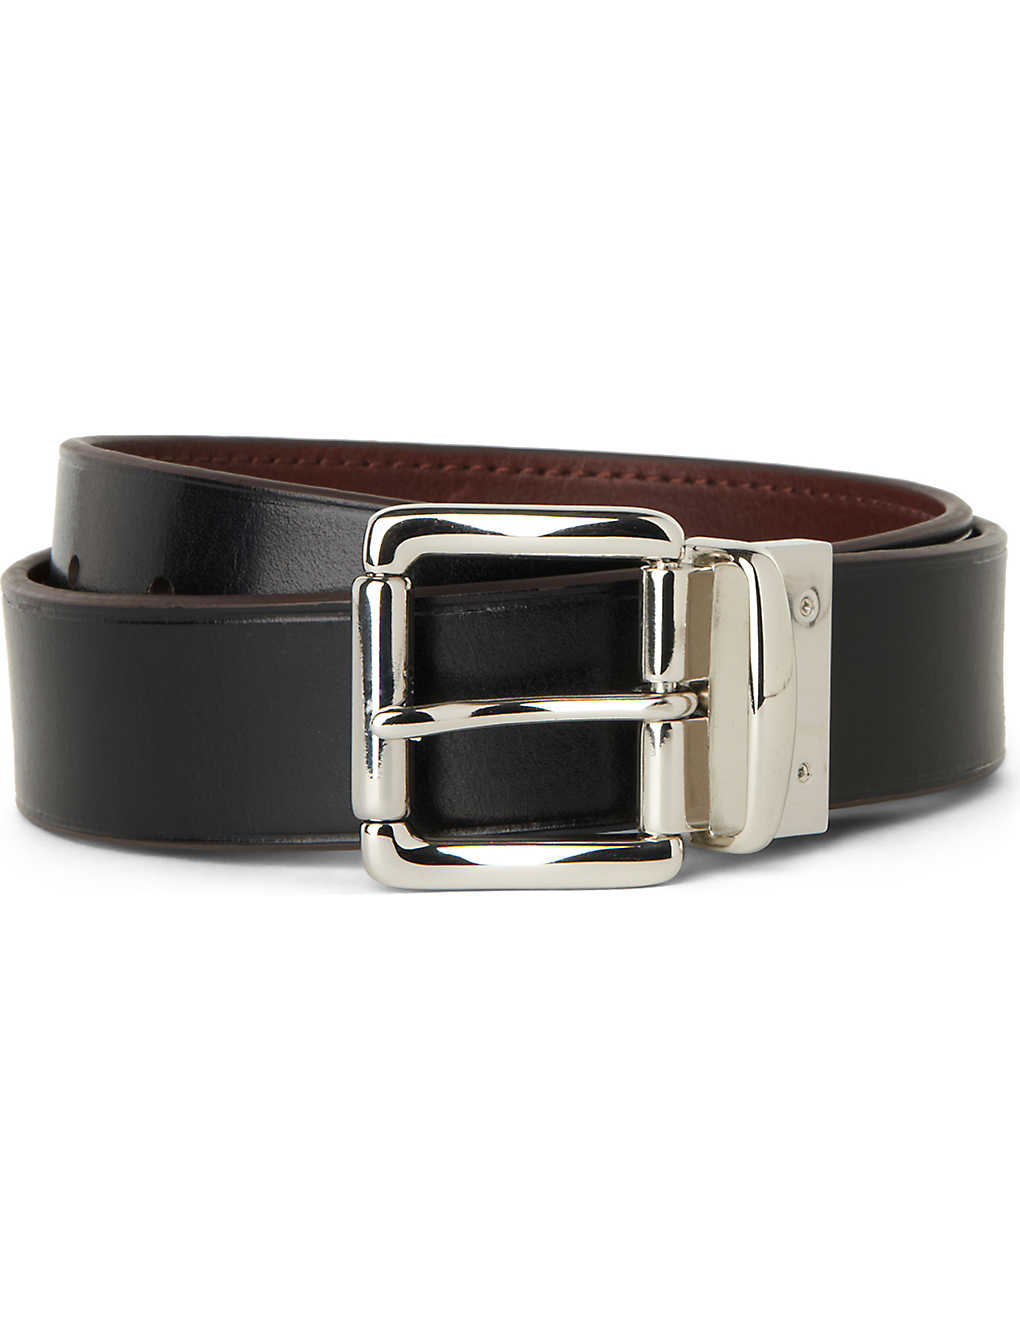 9cfc5dc35410 POLO RALPH LAUREN - Reversible leather belt